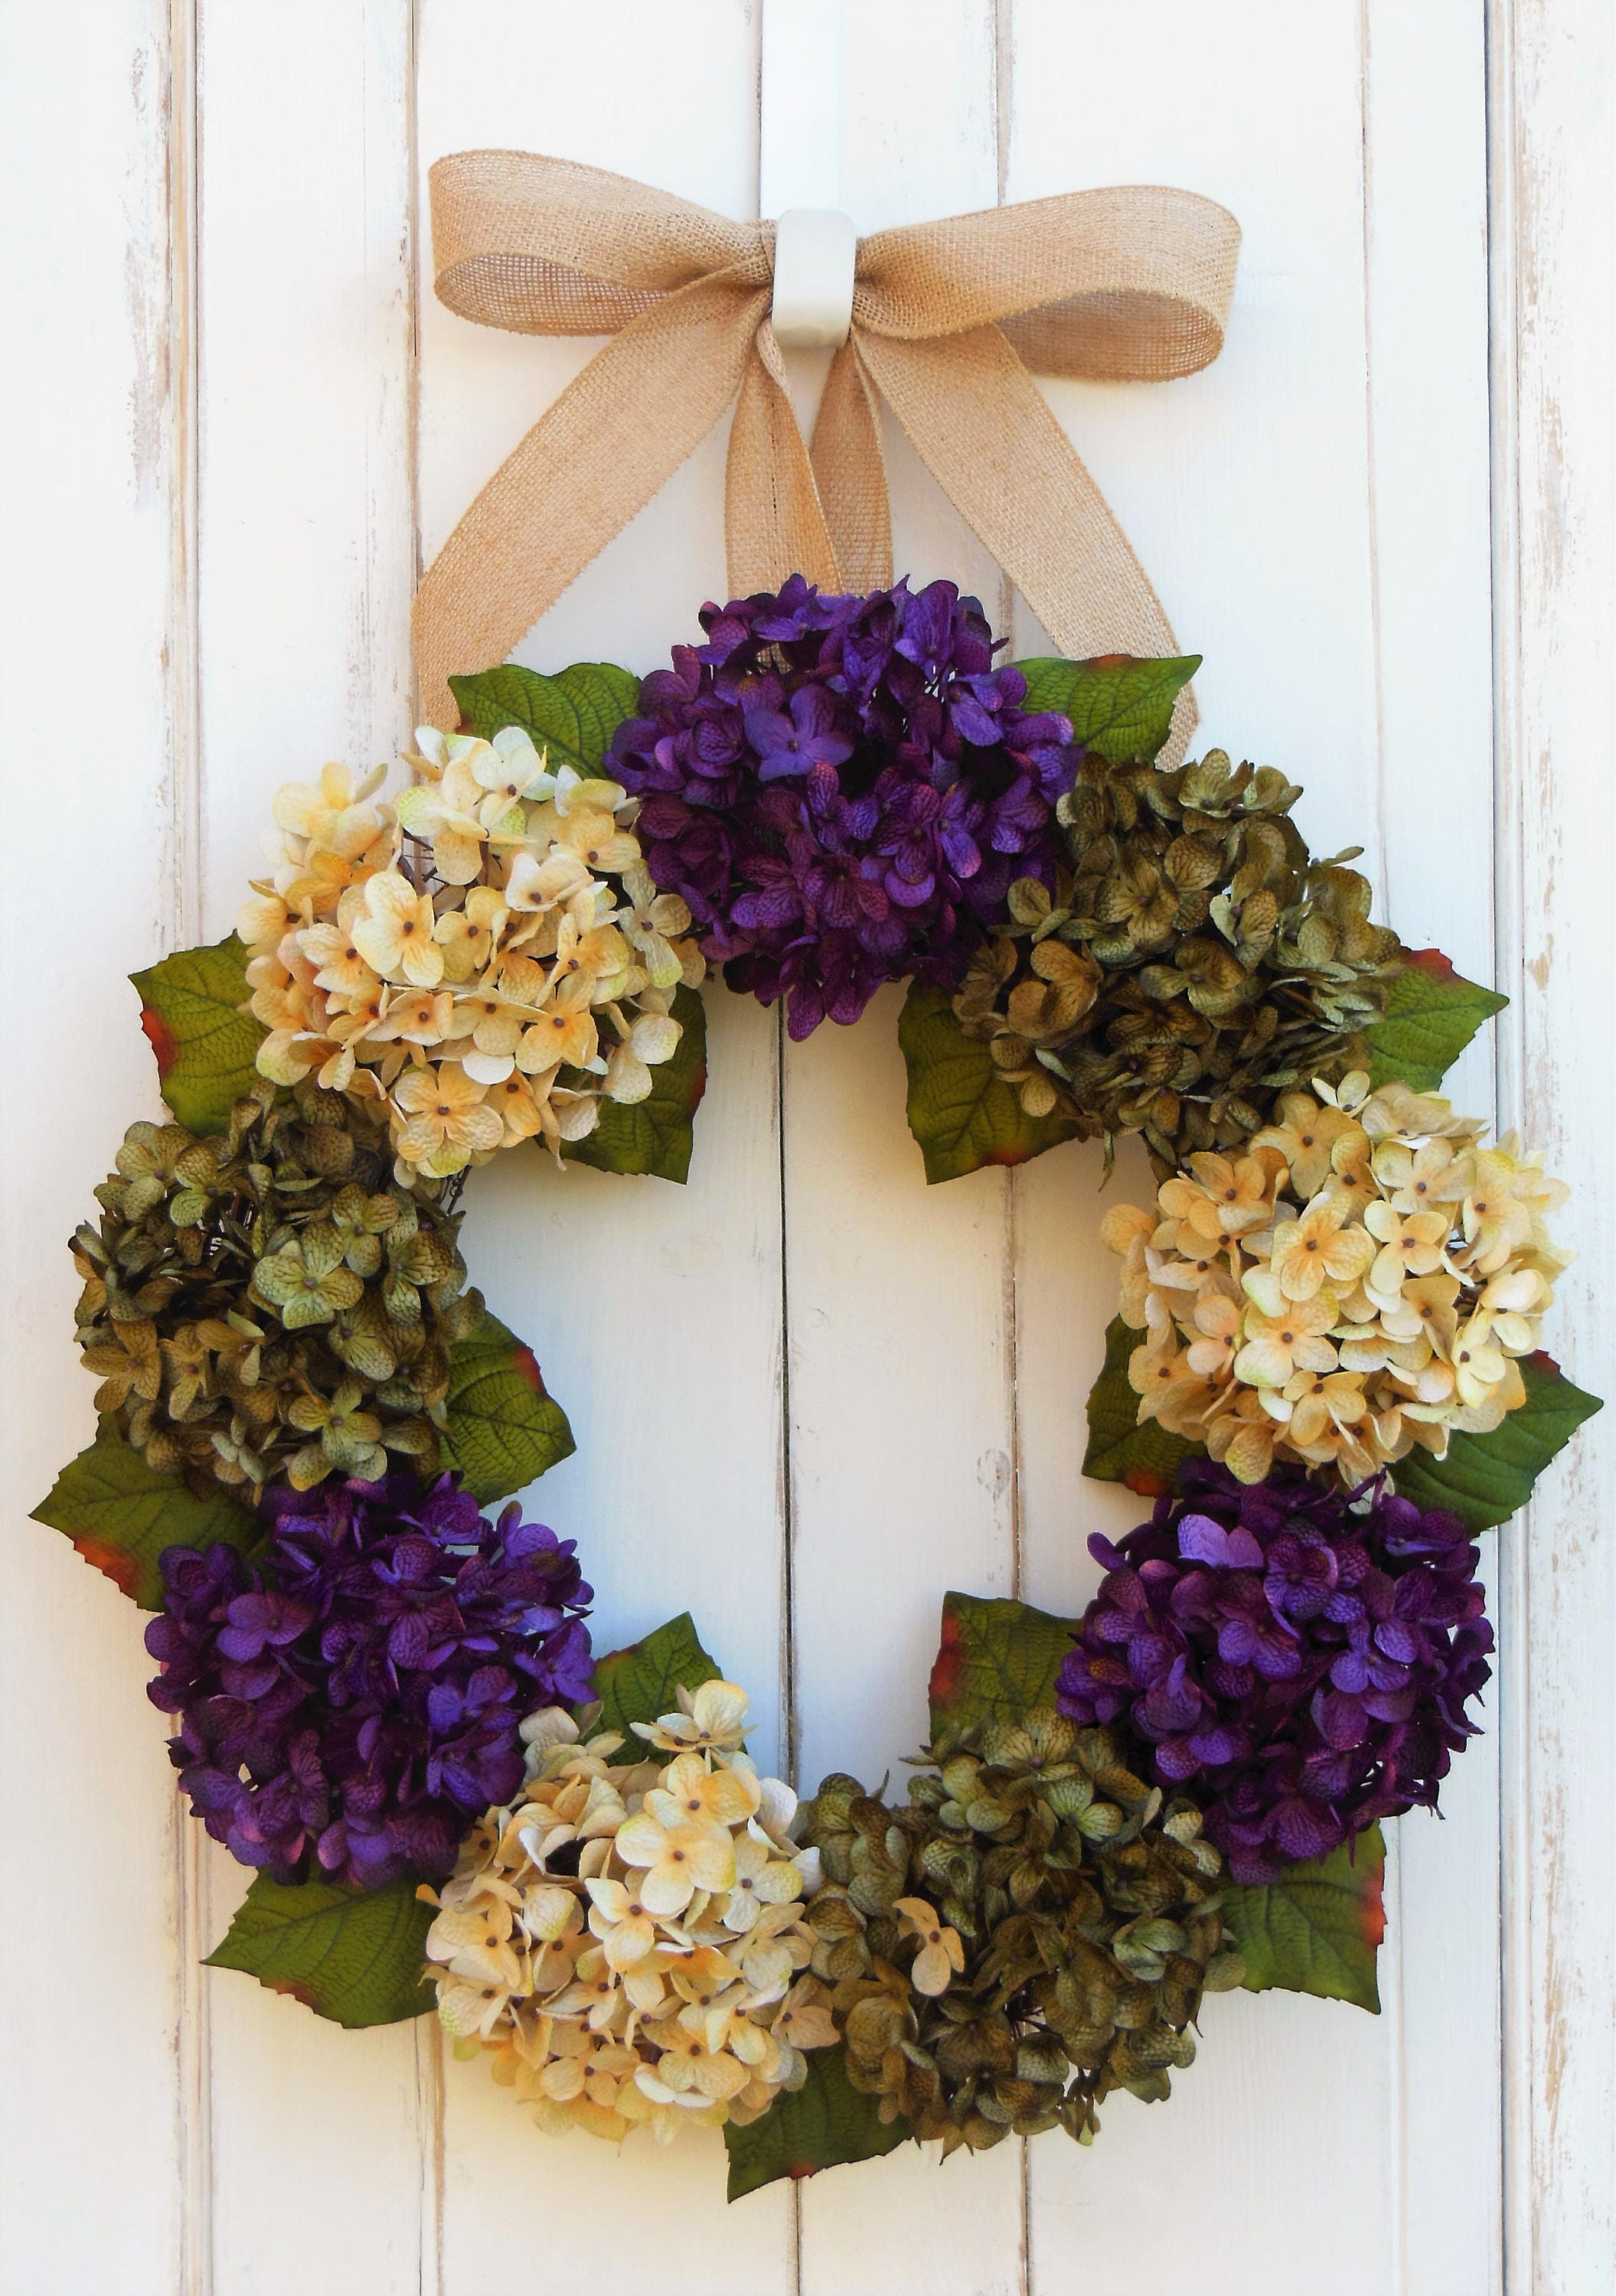 Front Door Wreath, Hydrangea Wreath, Spring Wreath, Hydrangea Door Wreath, Wreaths  Hydrangea, Summer Door Wreath, Purple Hydrangeas,